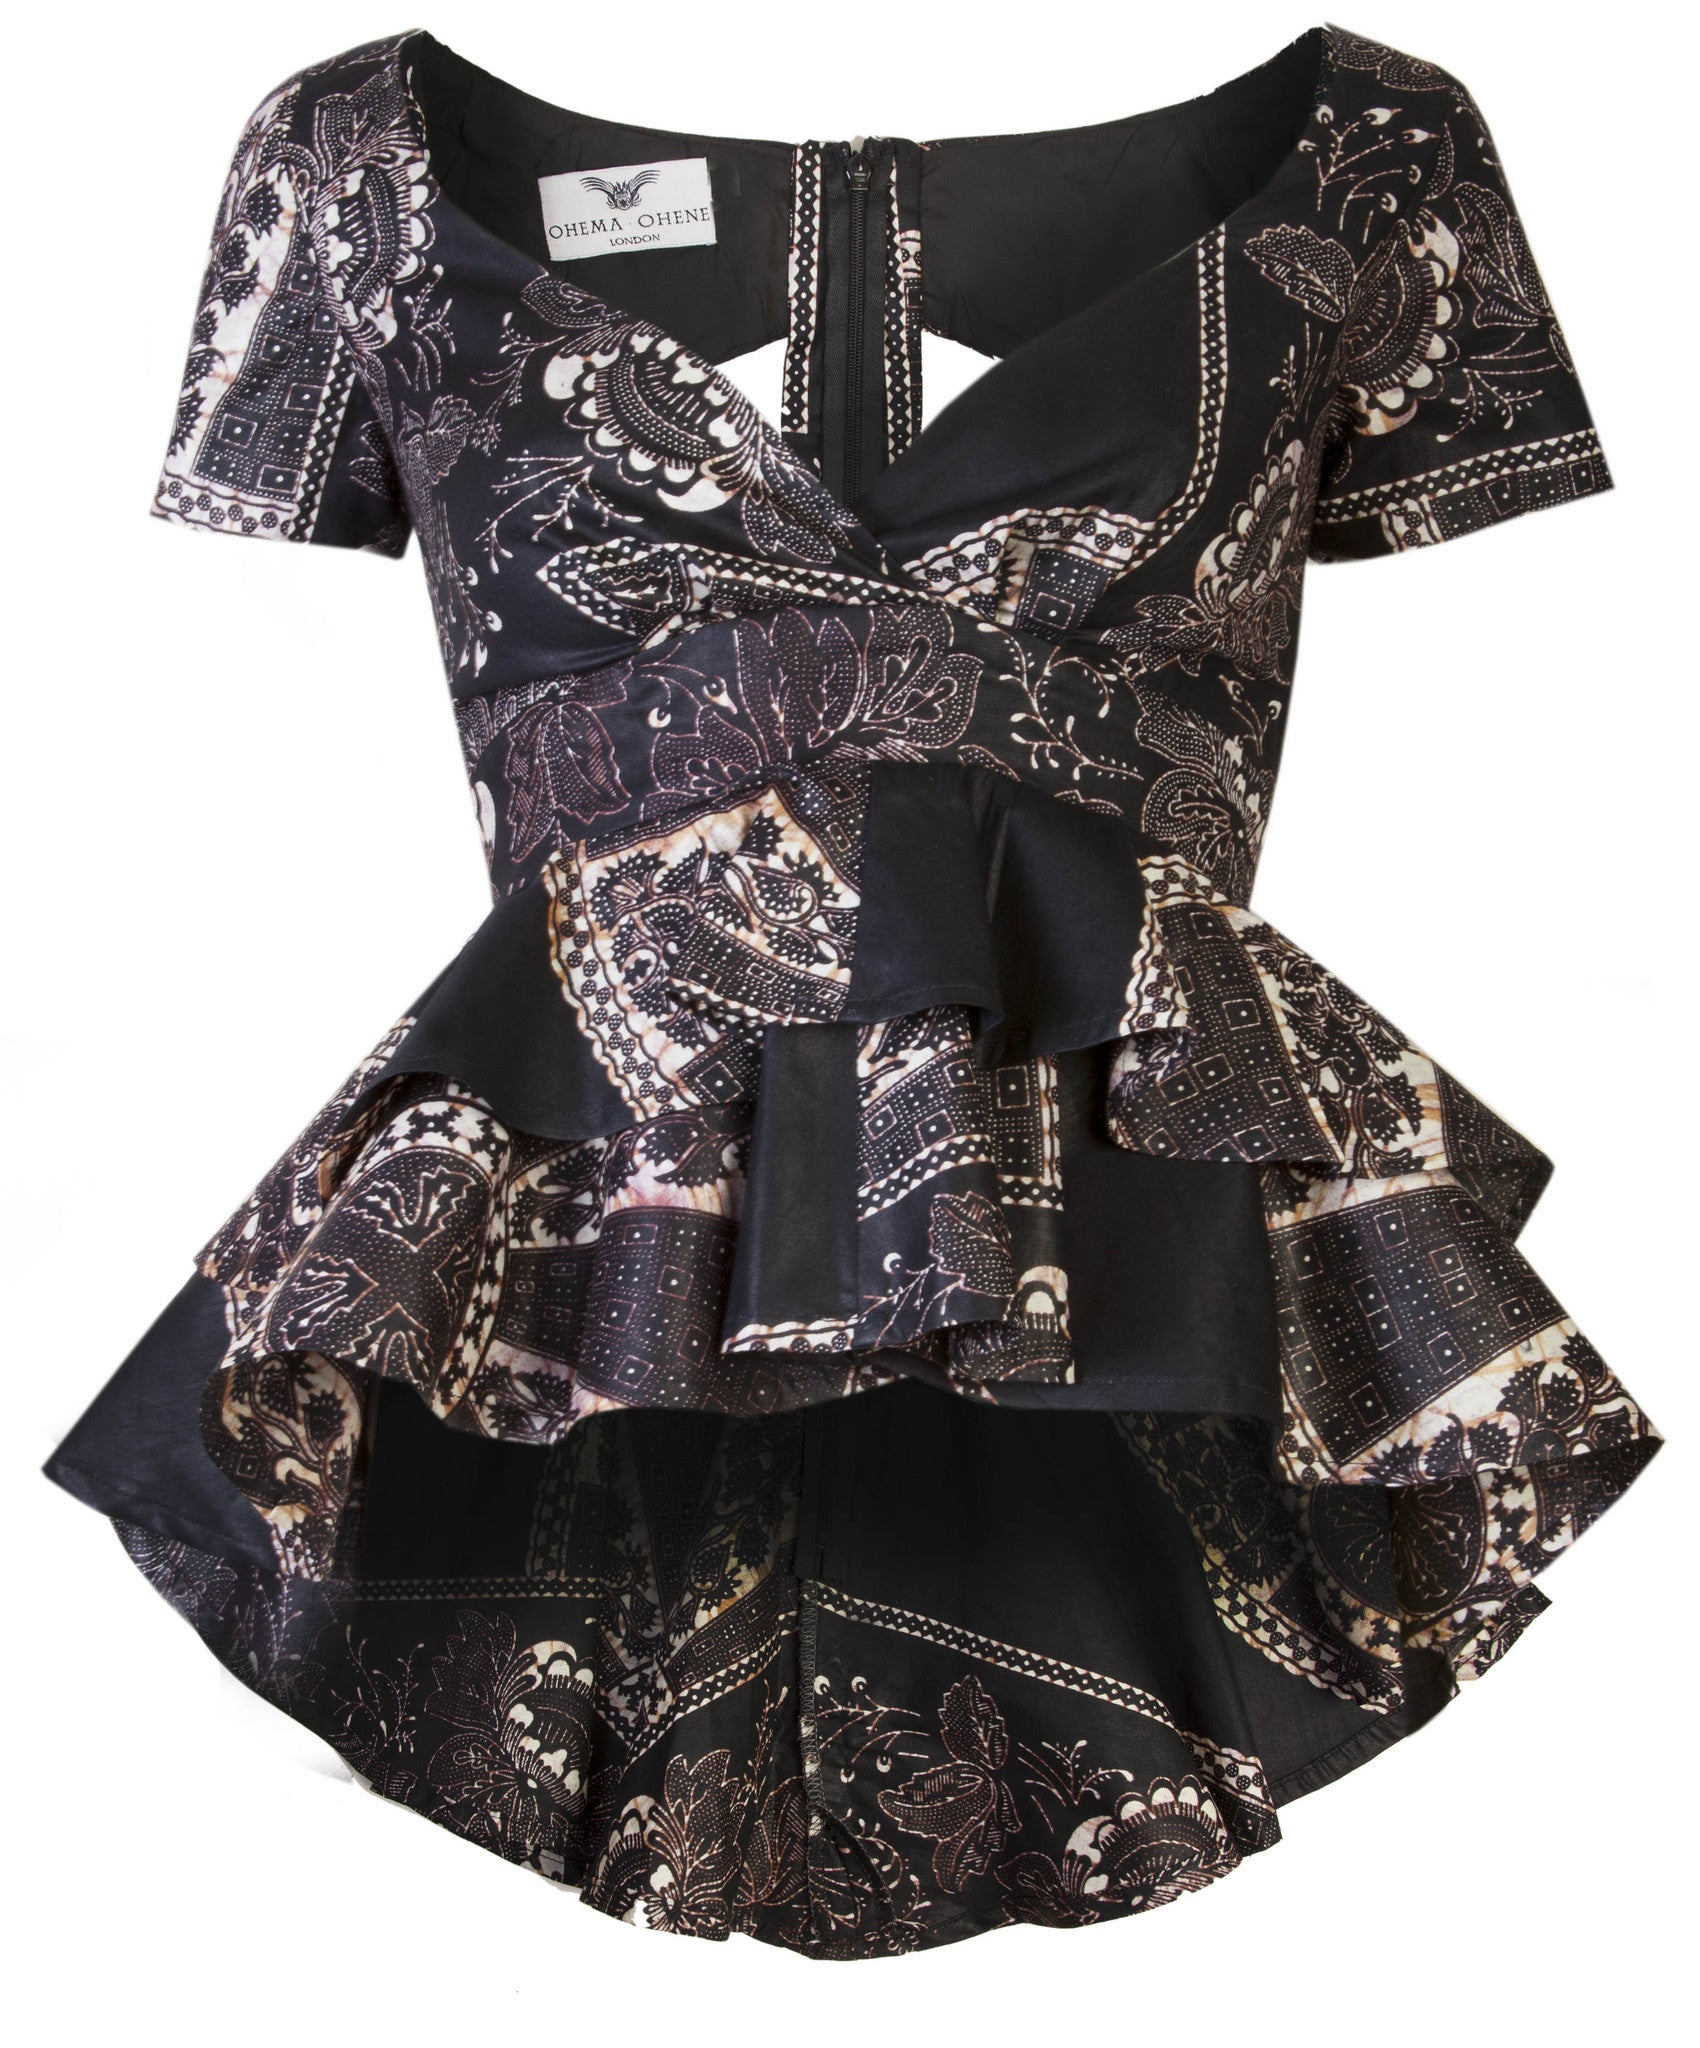 Joanna peplum top 'baroque' - OHEMA OHENE AFRICAN INSPIRED FASHION  - 1